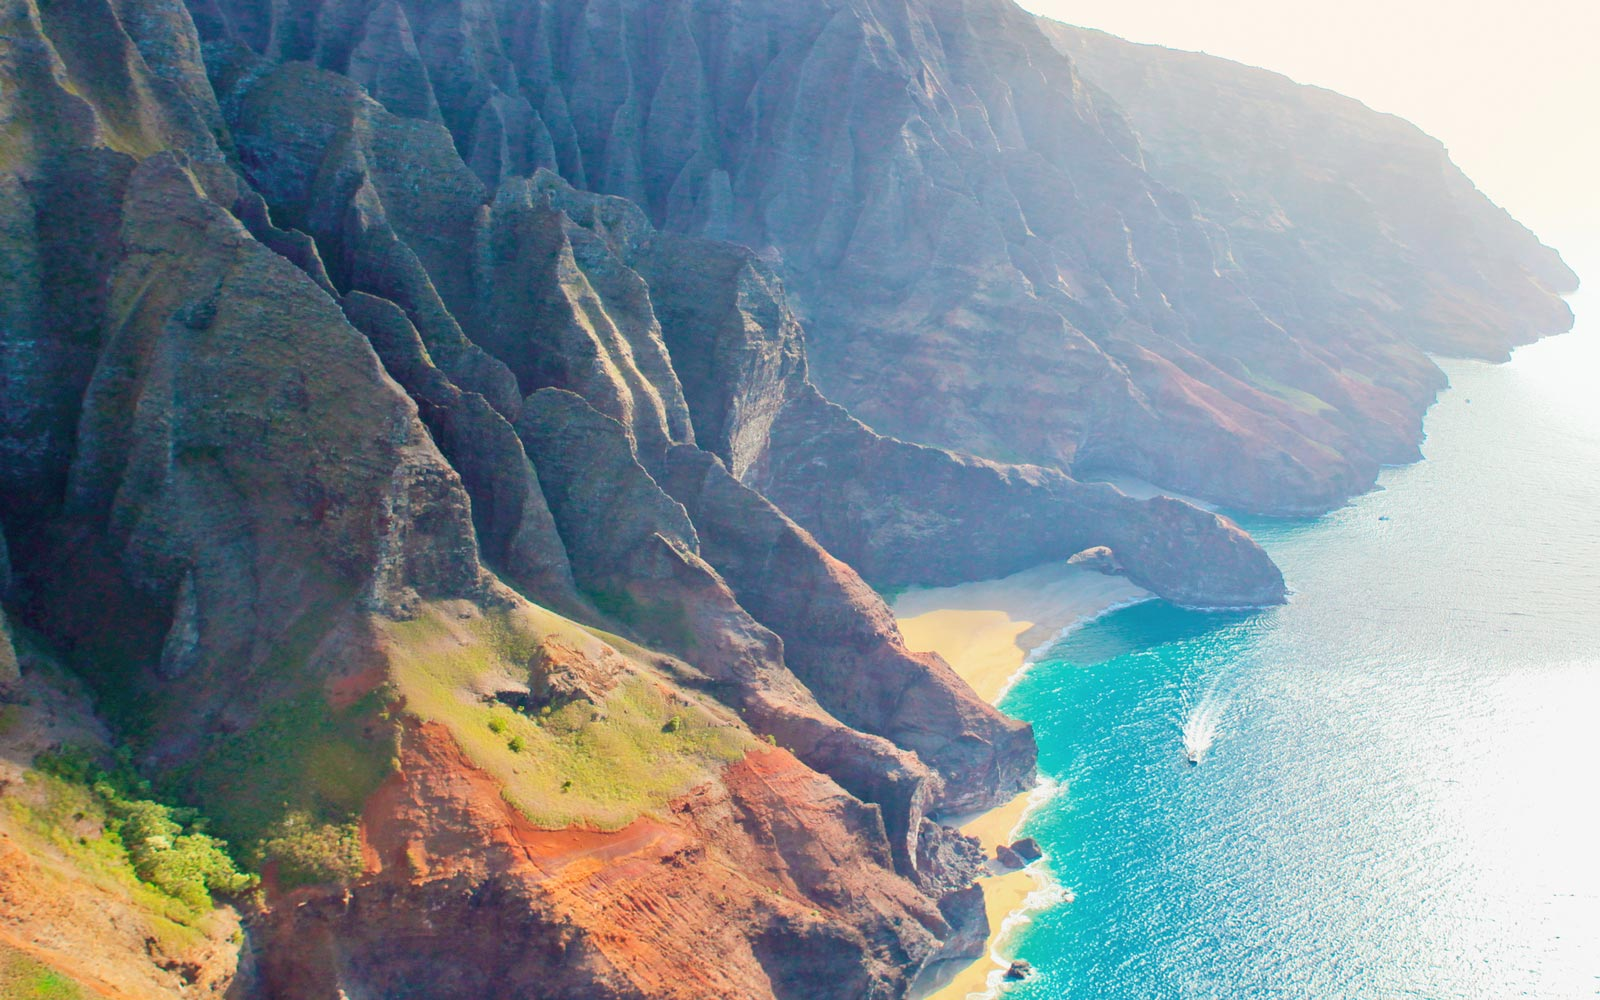 View of Hawaii's Napali Coast from the air